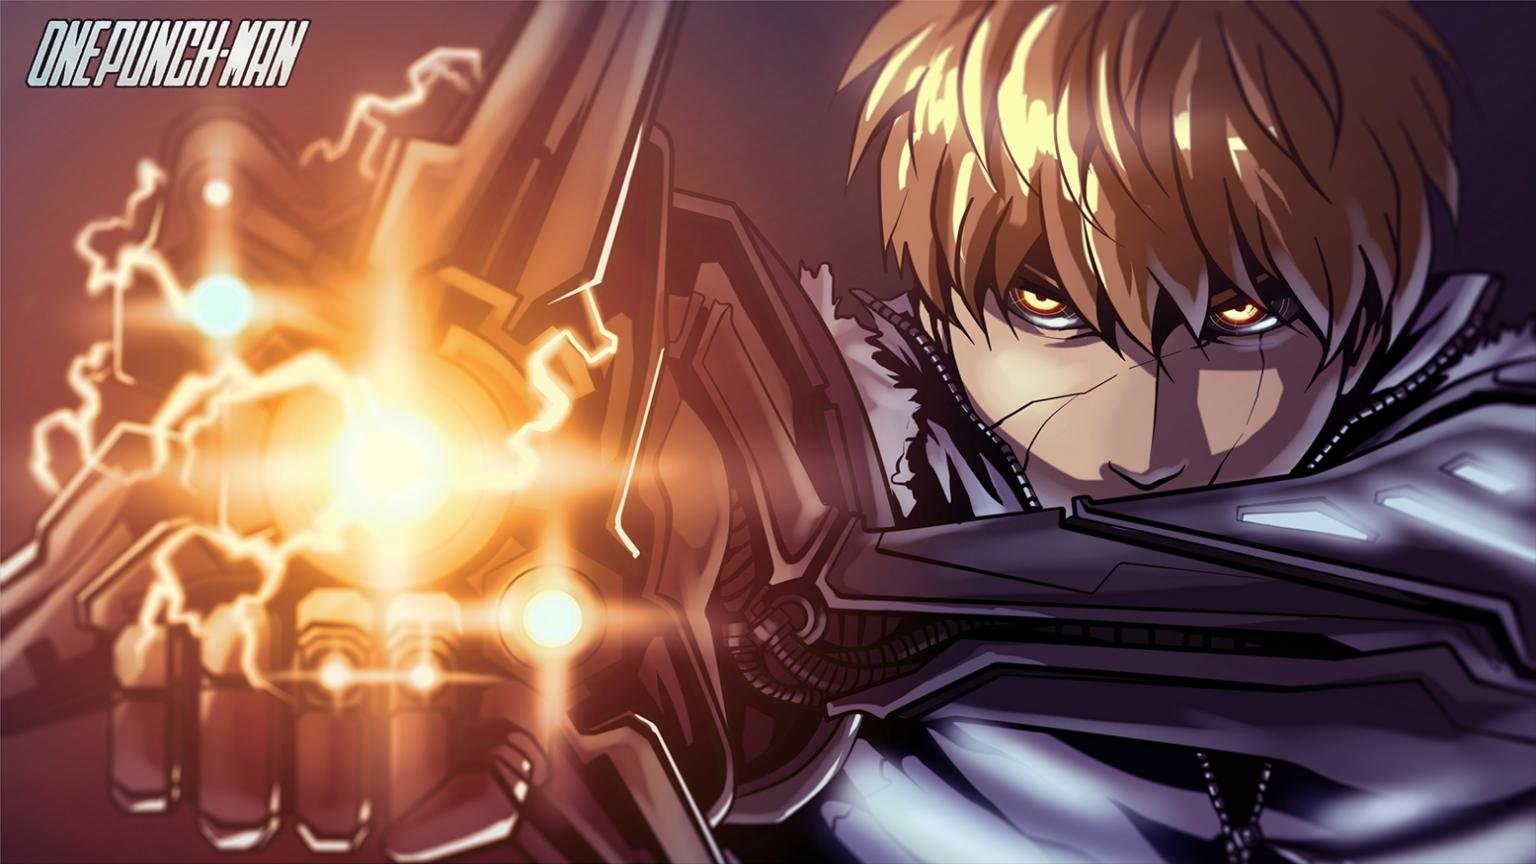 High resolution Genos (One-Punch Man) hd 1536x864 wallpaper ID:345416 for desktop